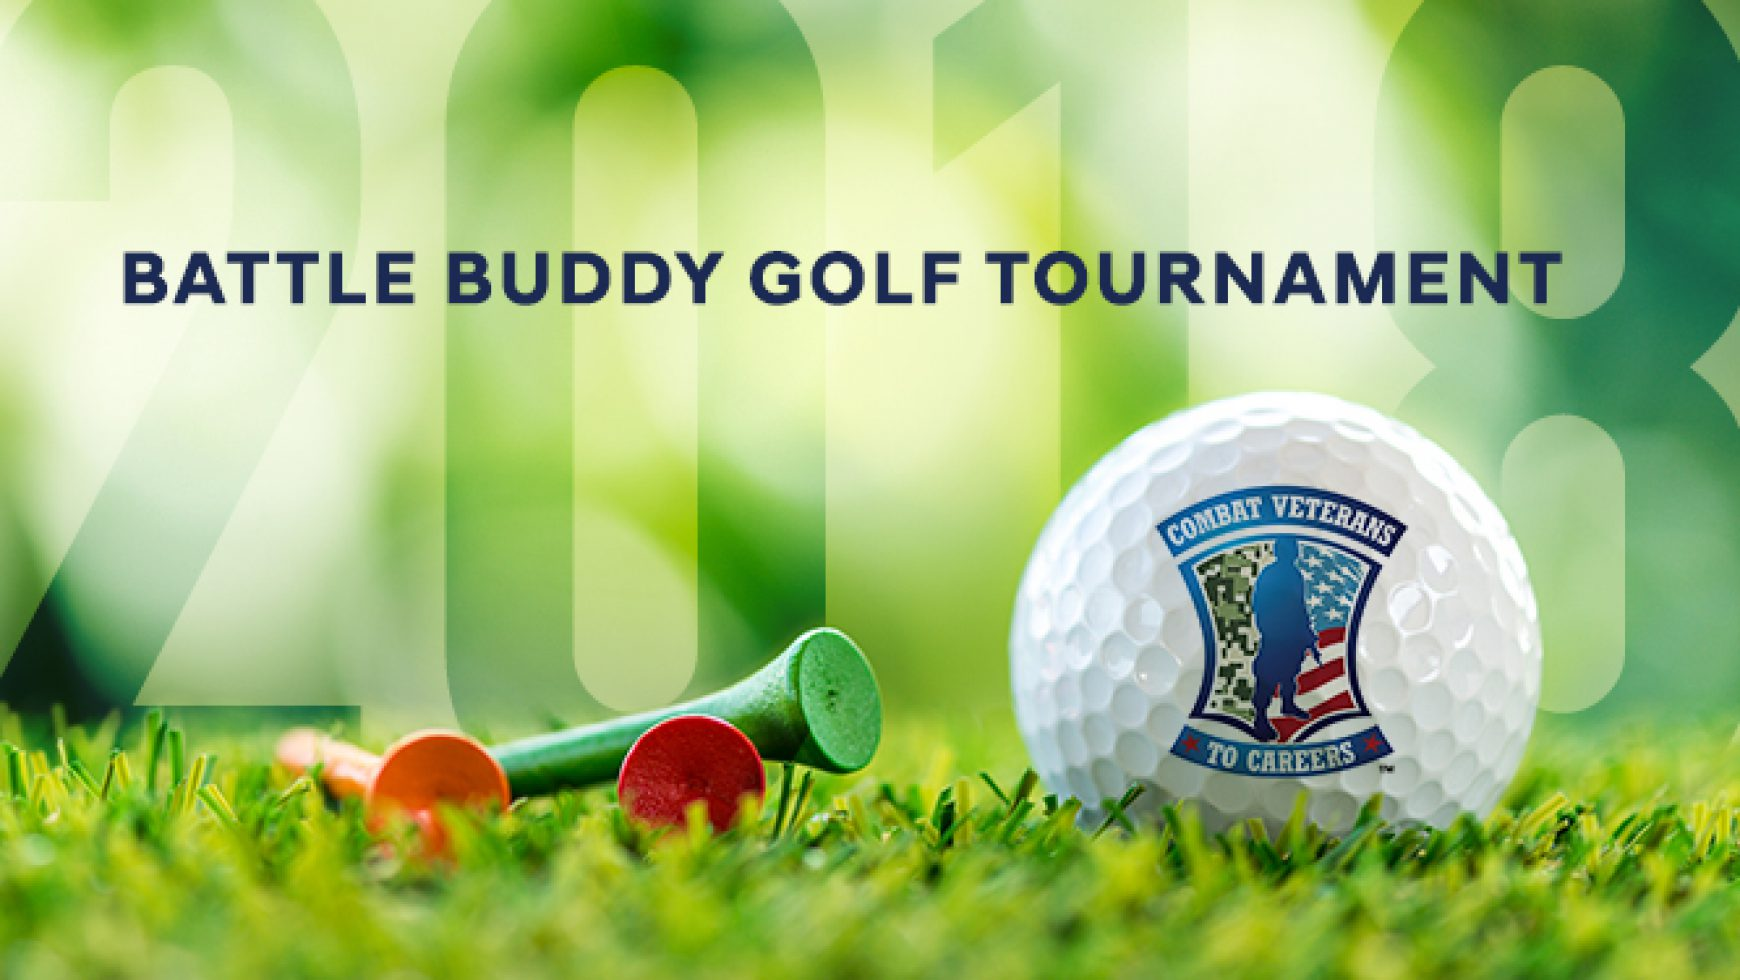 Join Us for the 4th Annual Battle Buddy Golf Tournament!